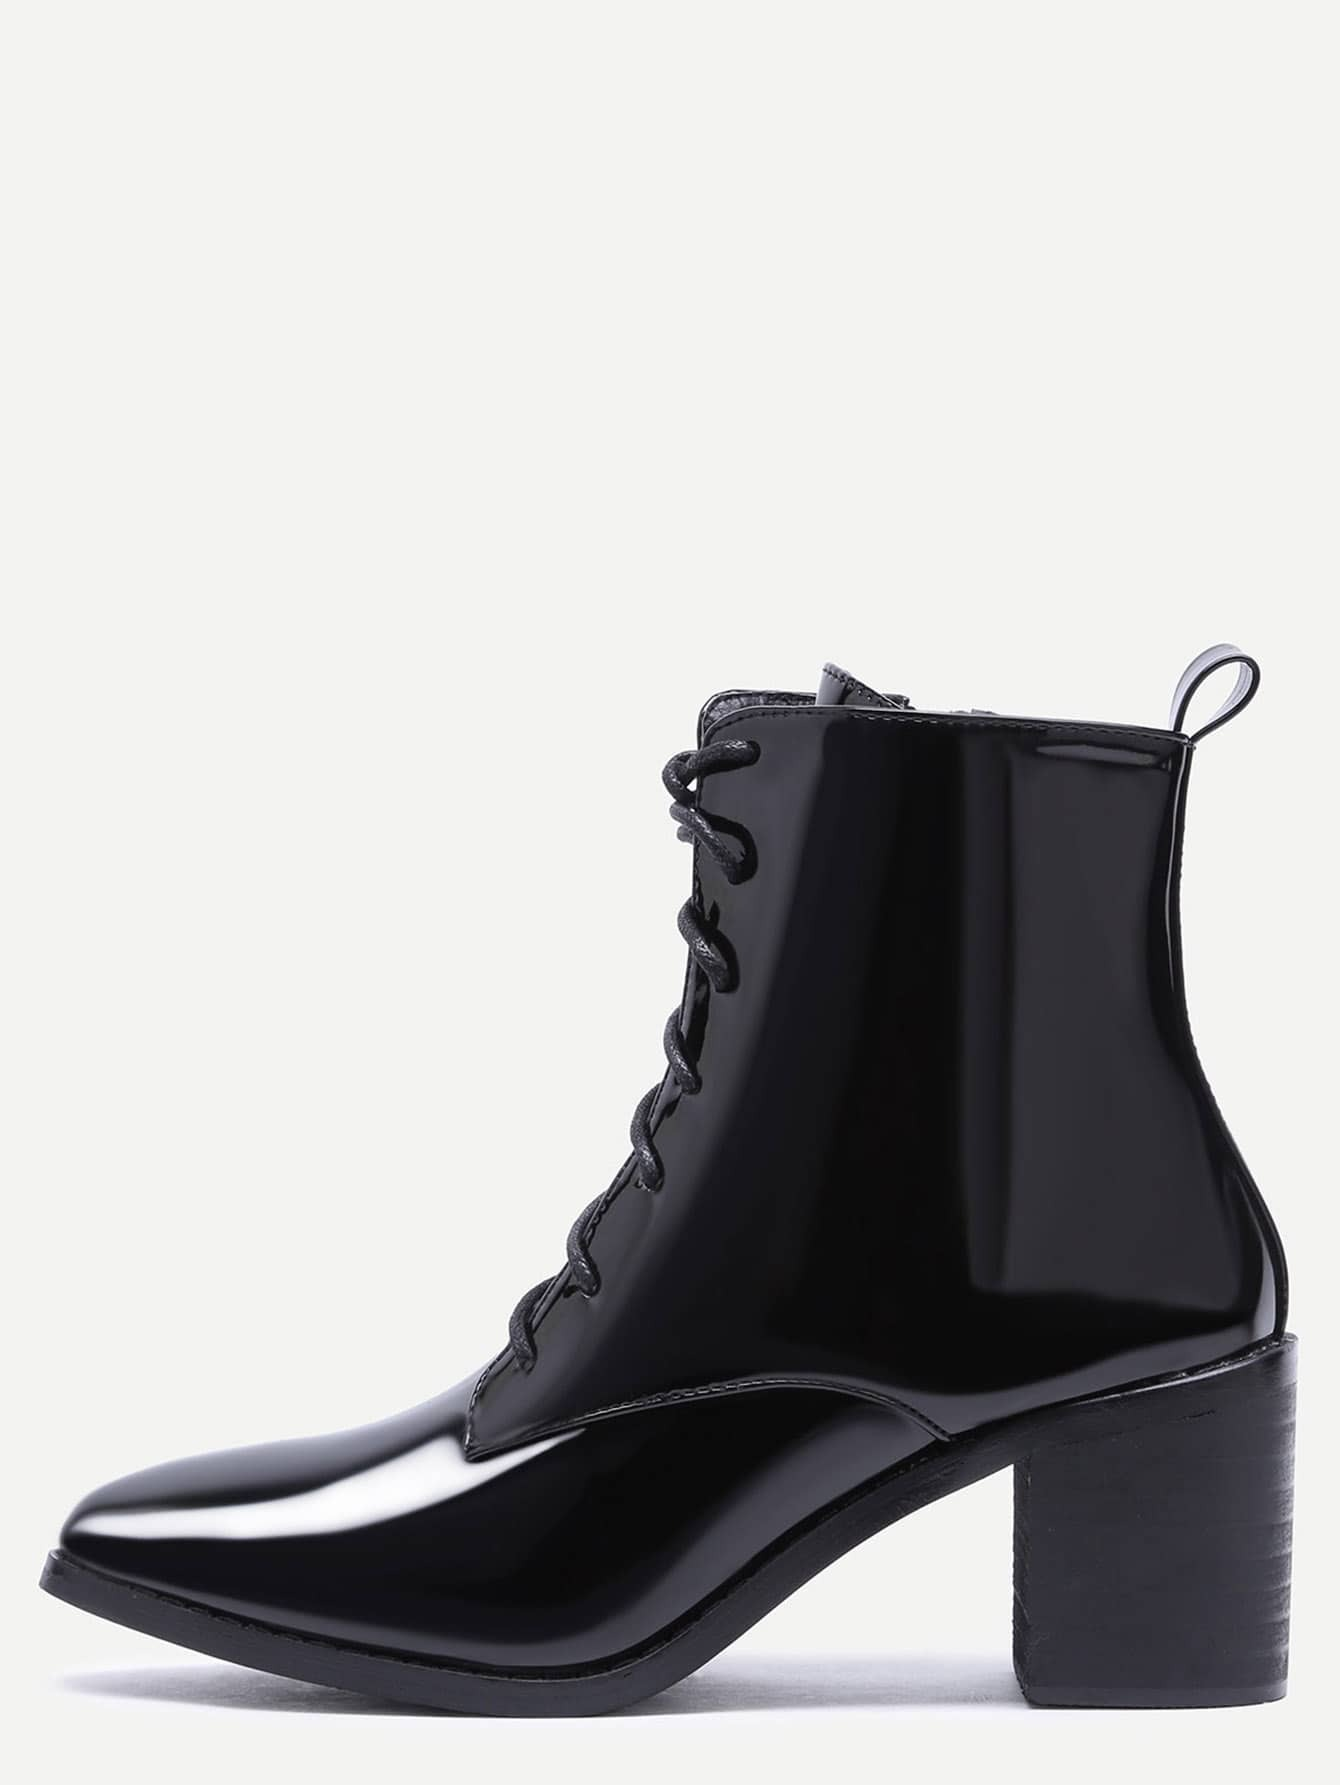 Black Patent Leather Point Toe Lace Up Booties shoes161021810